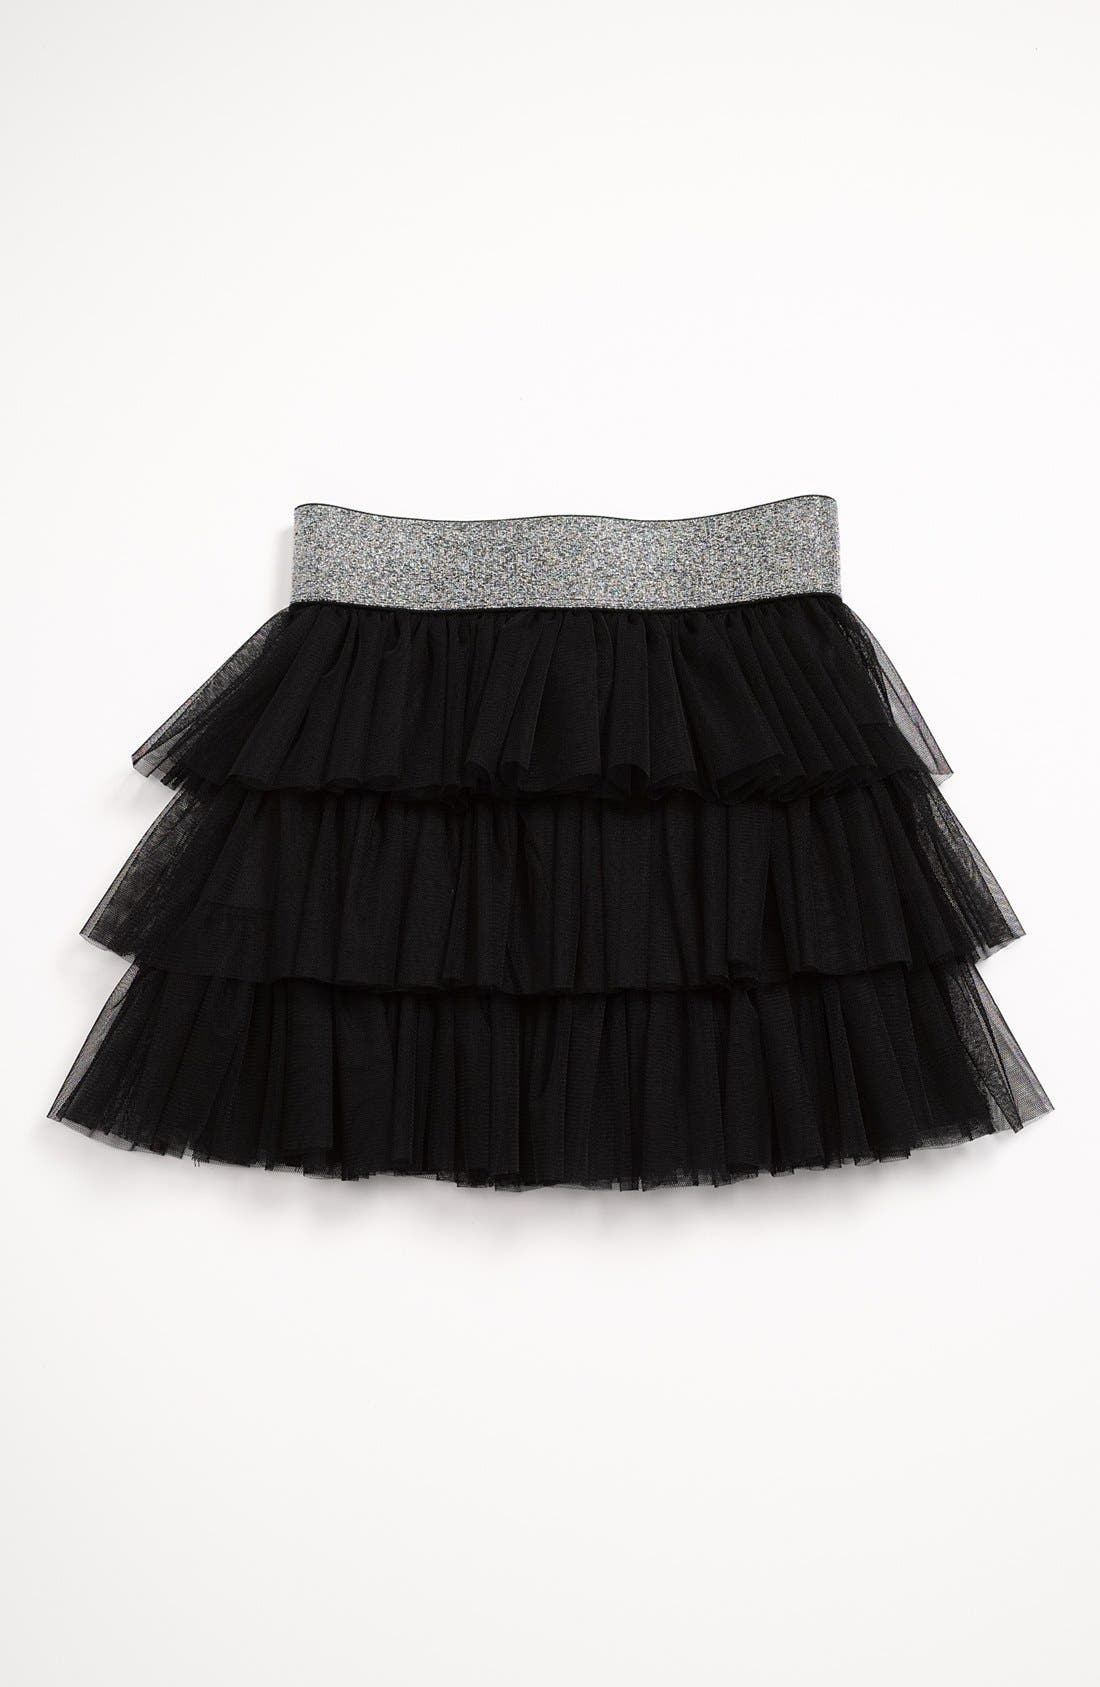 Main Image - Jenna & Jessie Tutu Skirt (Little Girls)